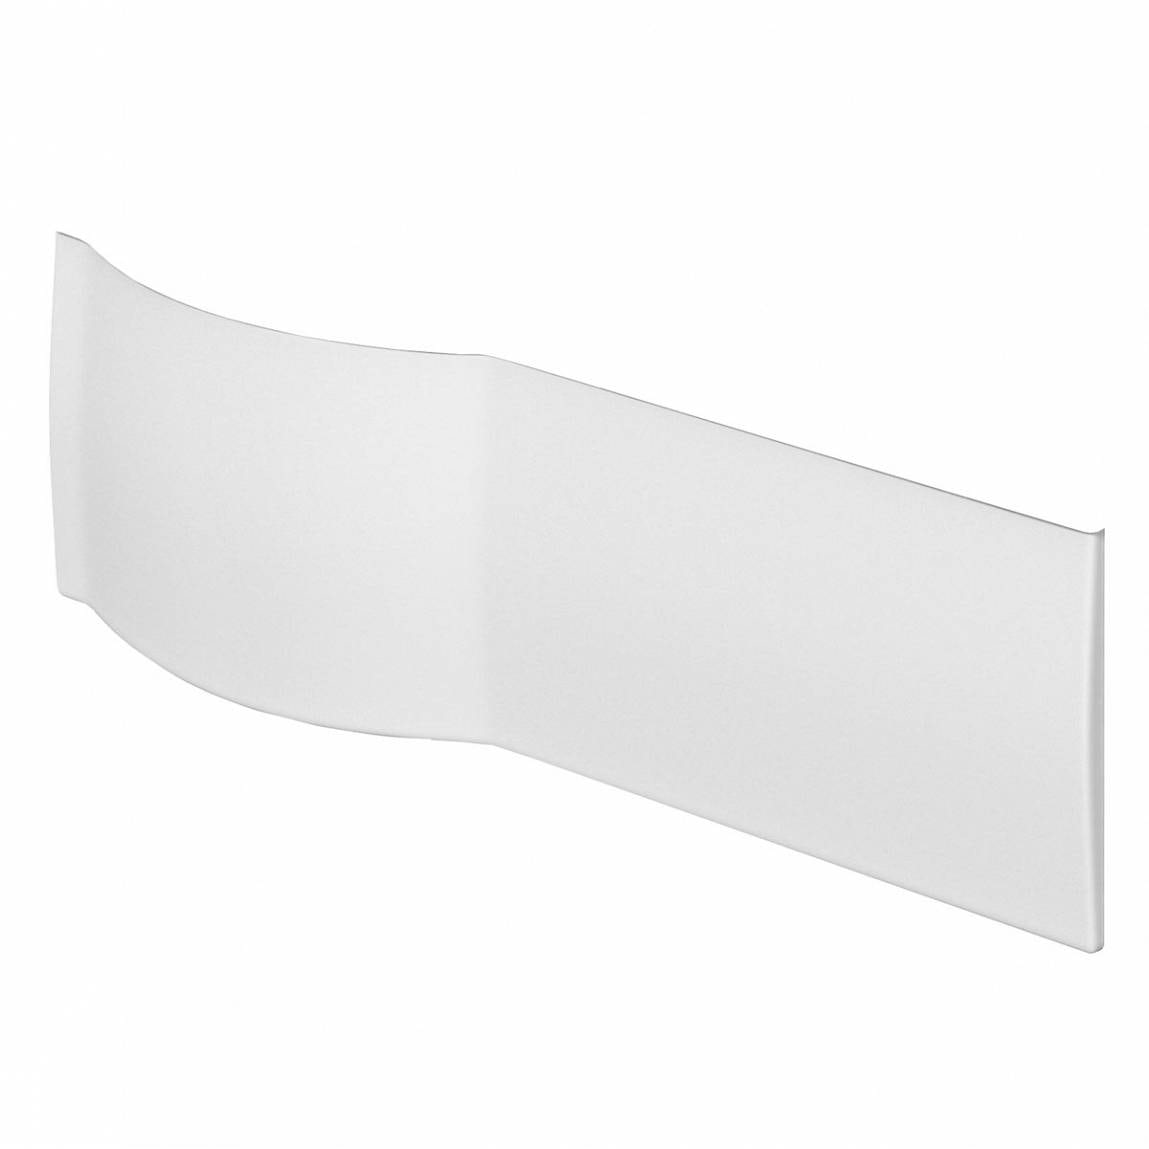 Orchard P shaped shower bath acrylic front panel 1500mm